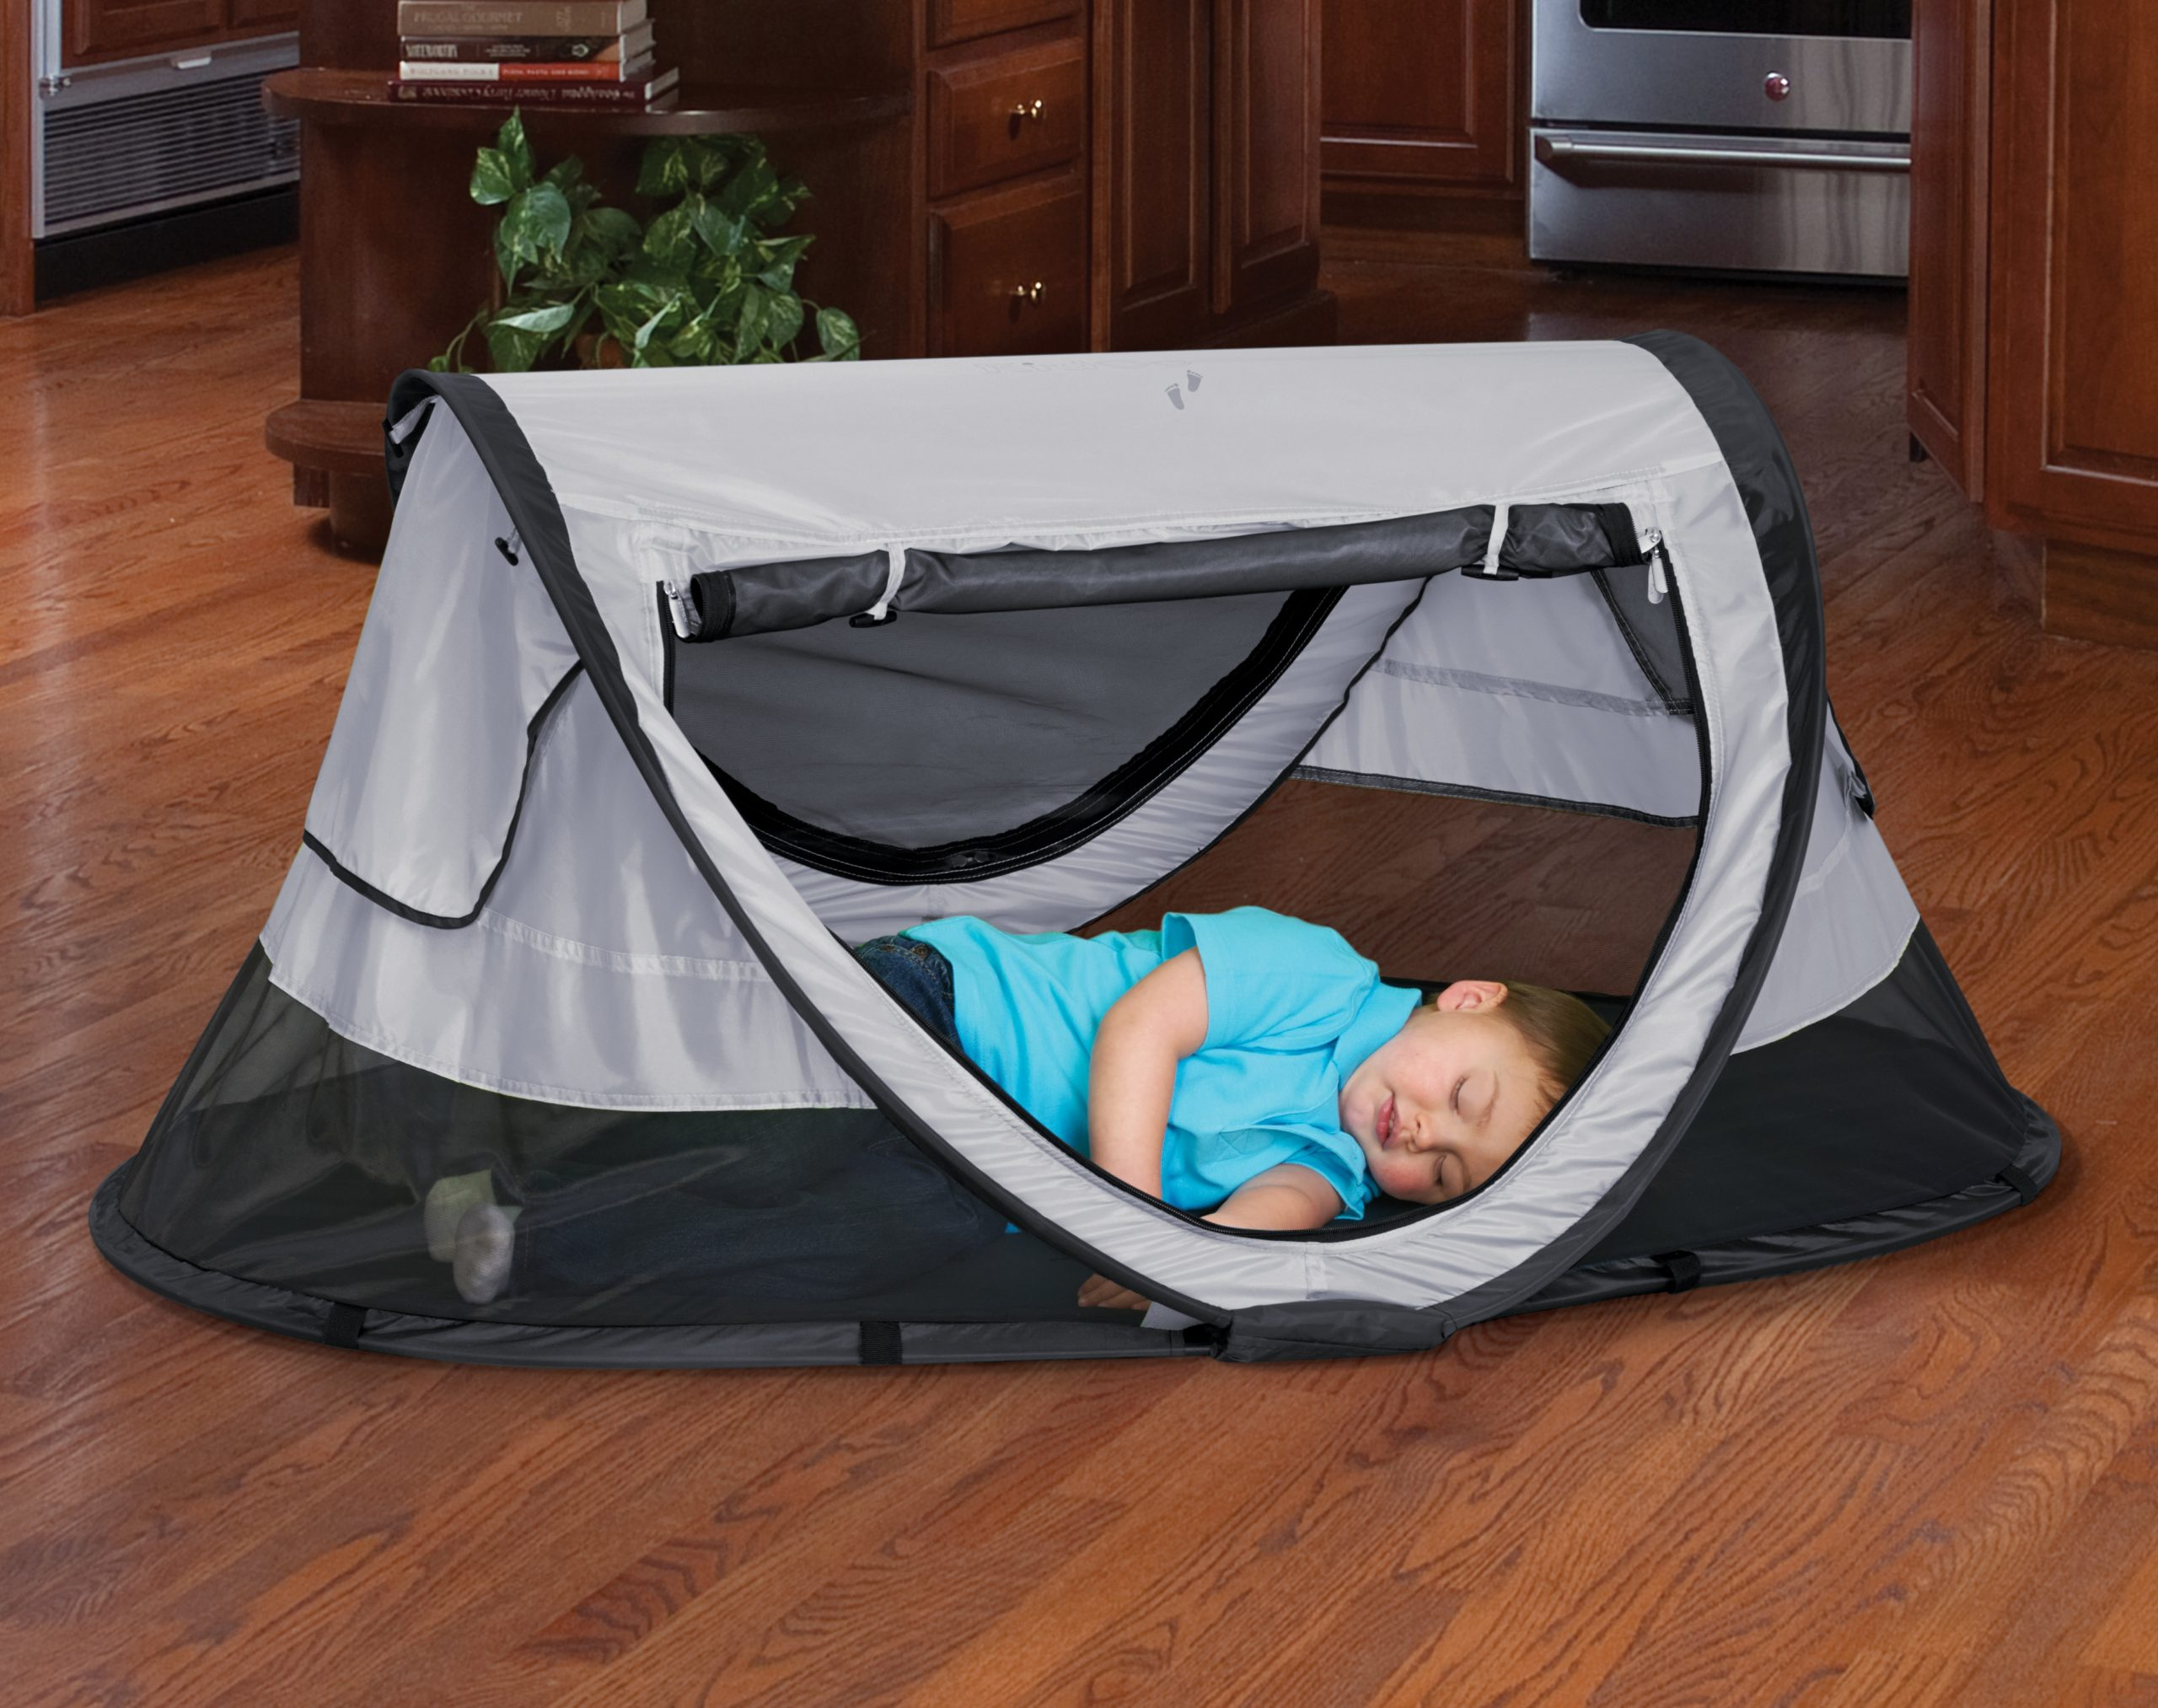 Toddler travel bed: Peapod Travel Bed